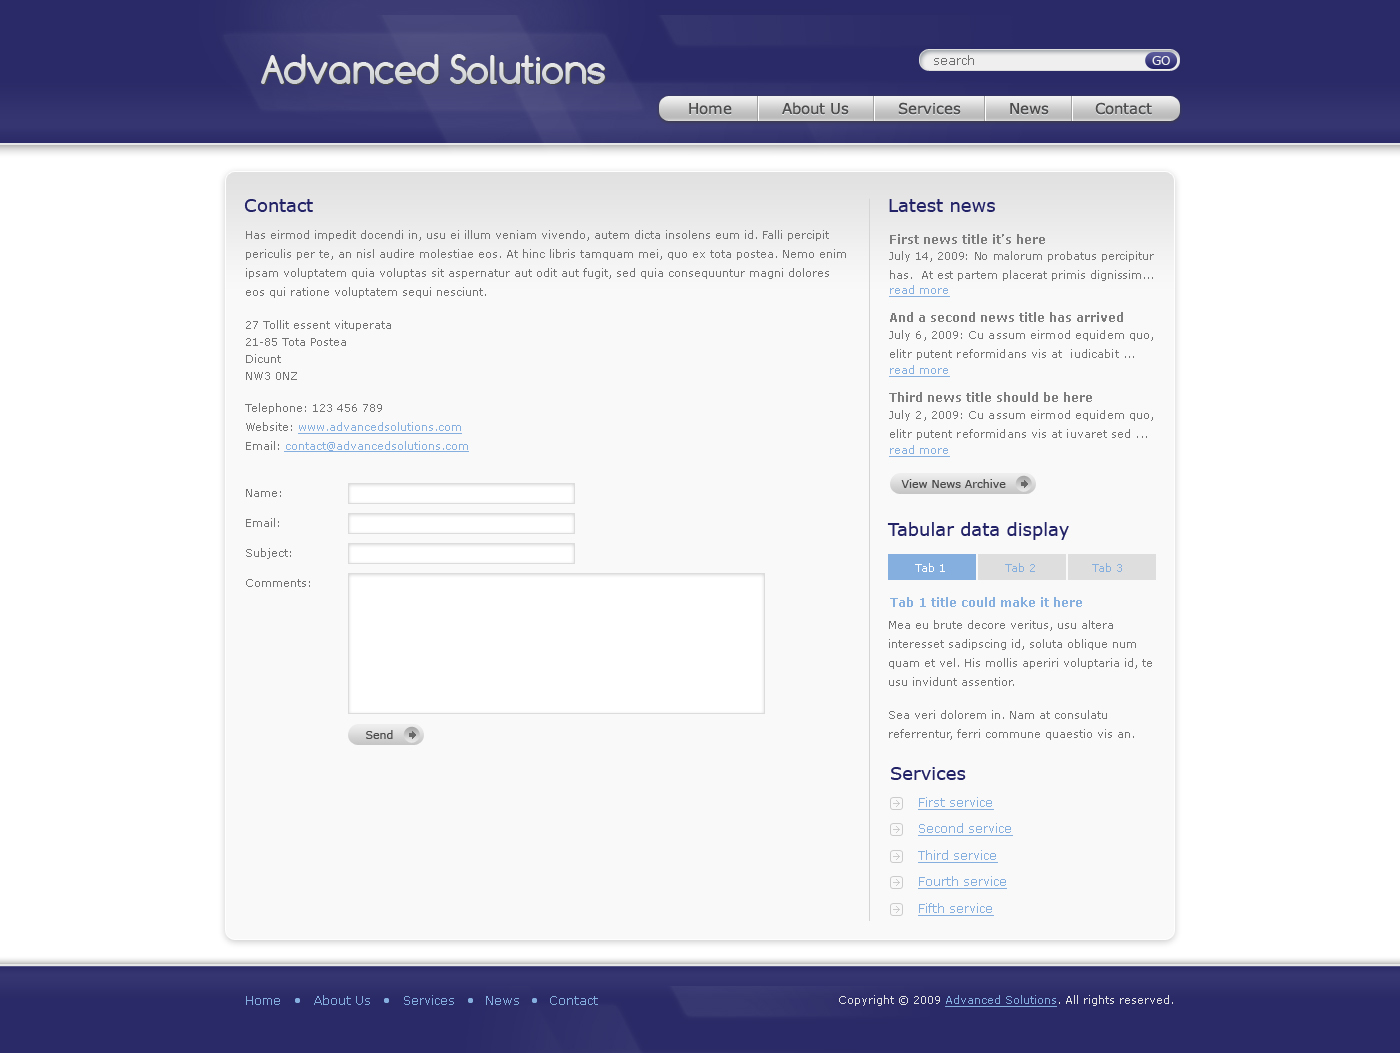 Advanced Solutions - Professional Business Theme - Here we have the contact page of Advanced Solutions template - blue theme version. In contains an address and contact form. On the right side we have a latest news block, tabular data displayt block and services list block. The footer is simple here, contains just a menu and copyright text.